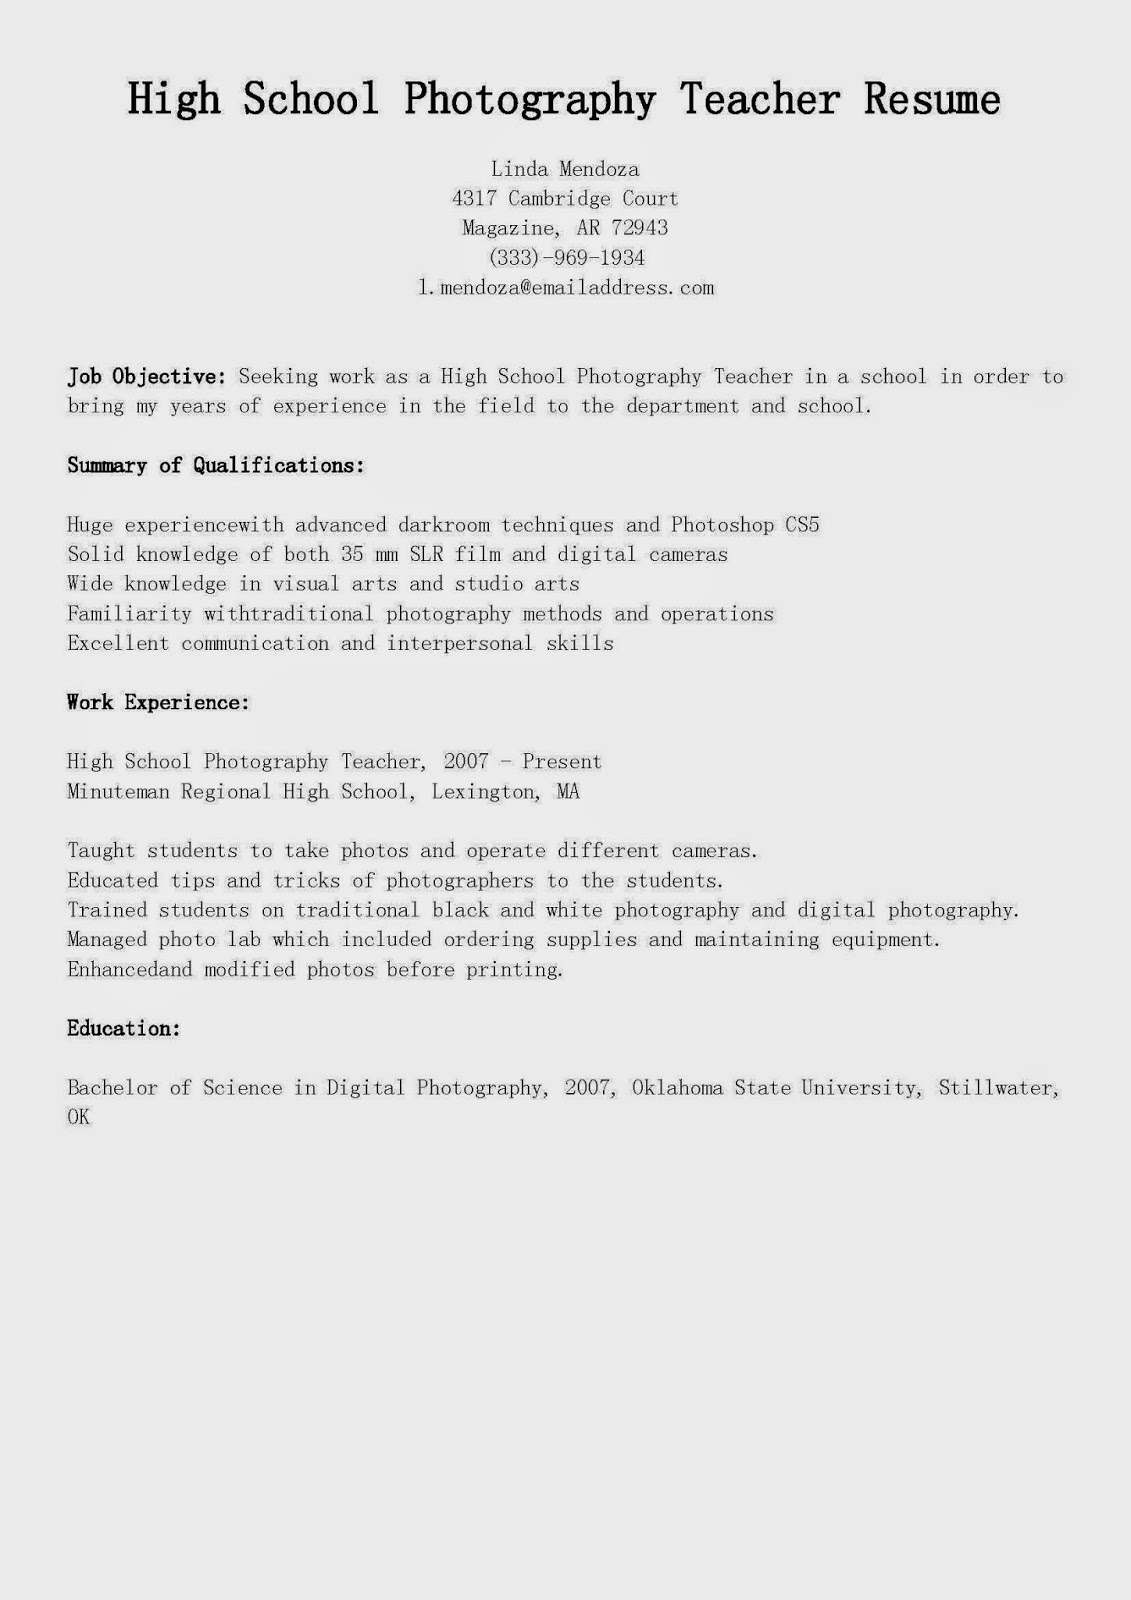 Photography Resume Samples Resume Samples High School Photography Teacher Resume Sample